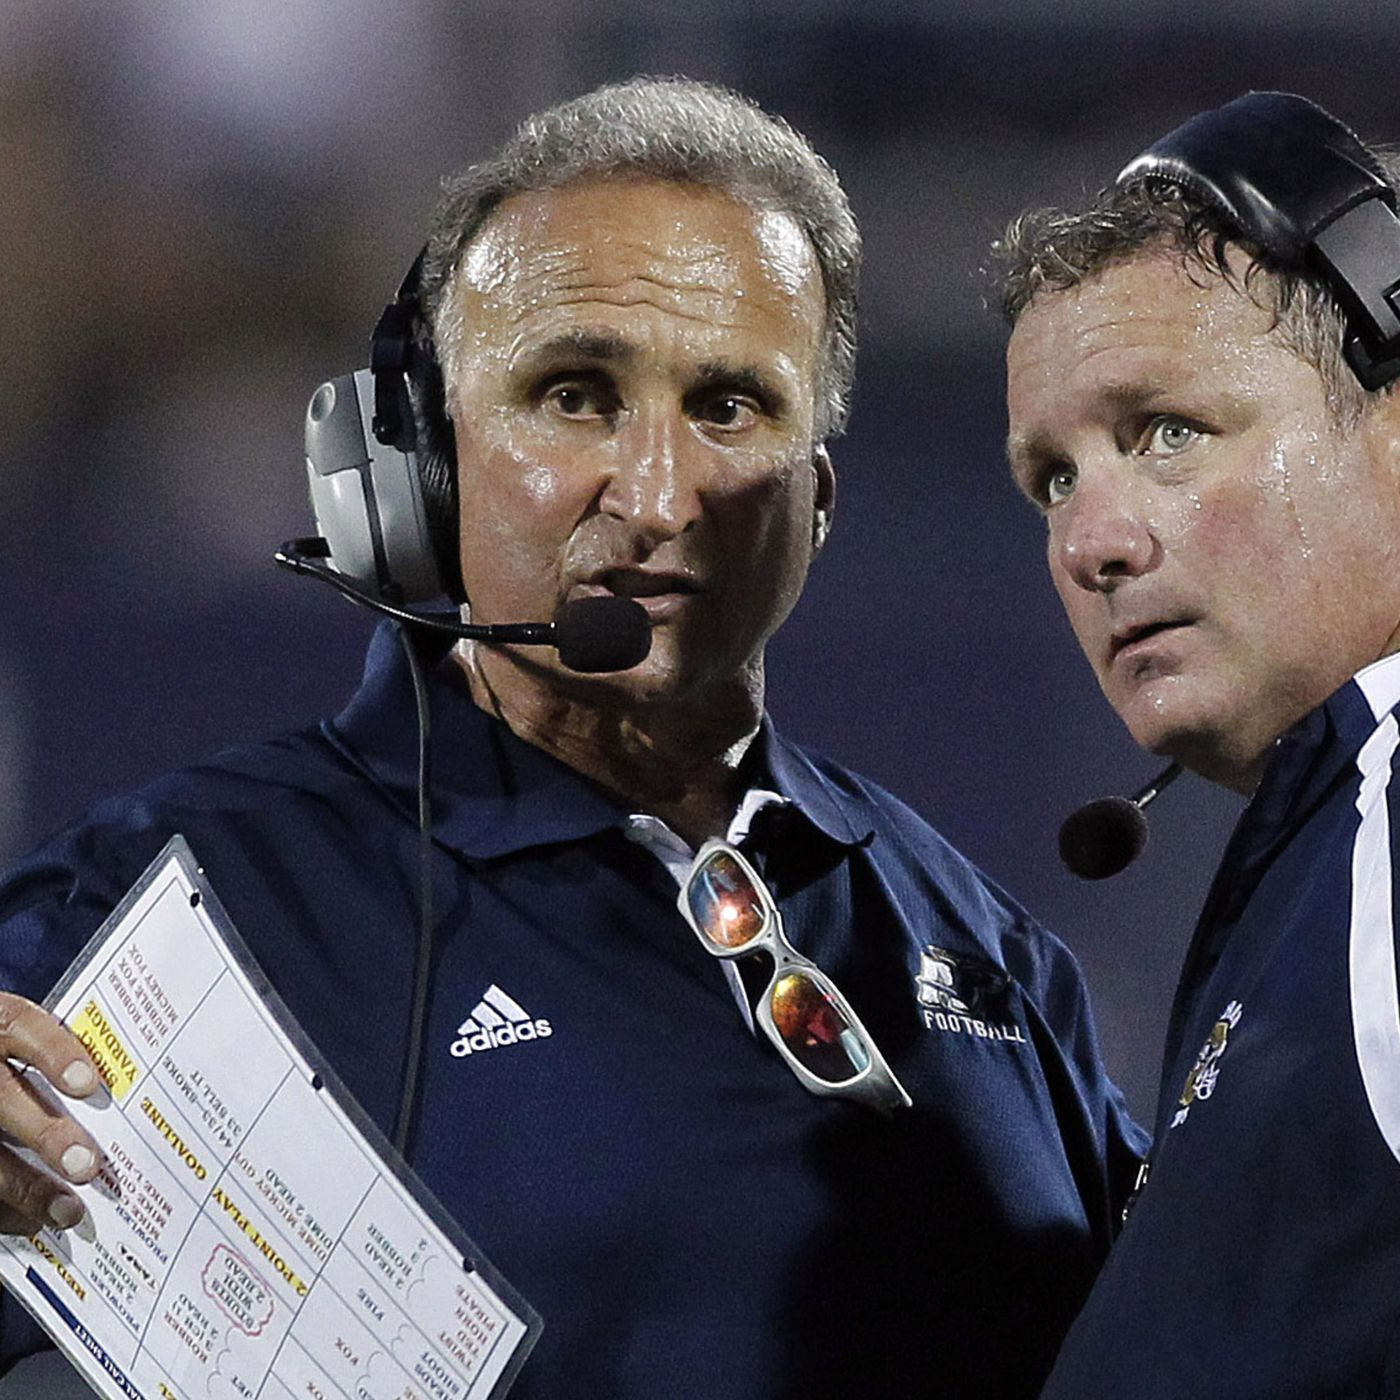 A Look At Mac Football Coaching Salaries Does More Money Translate Into More Success Hustle Belt